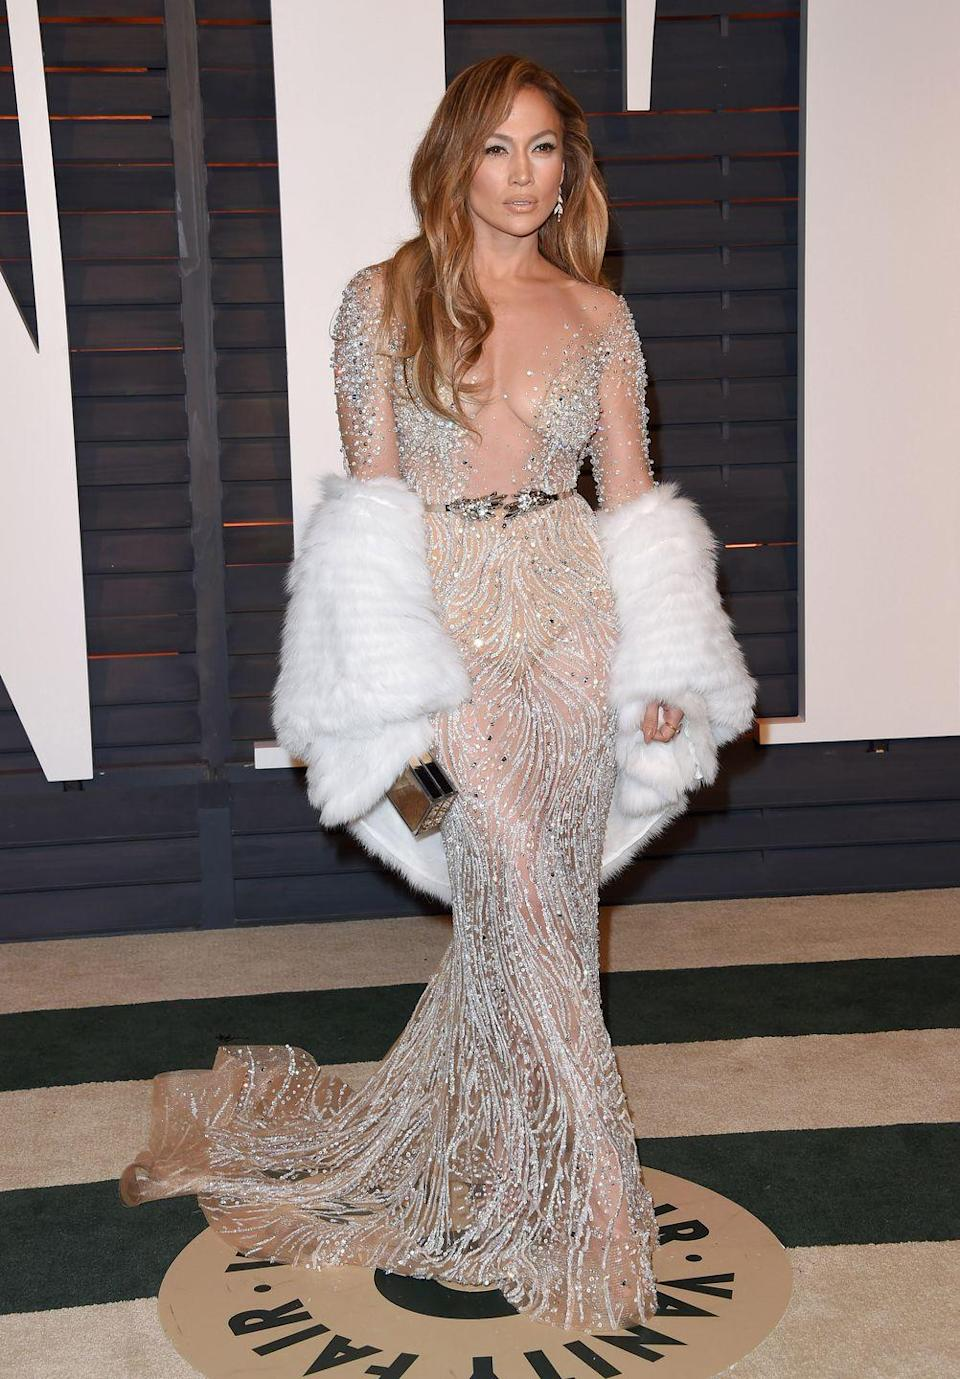 <p>From one sheer dress to another on the same night....attending the Vanity Fair Oscars afterparty.</p>